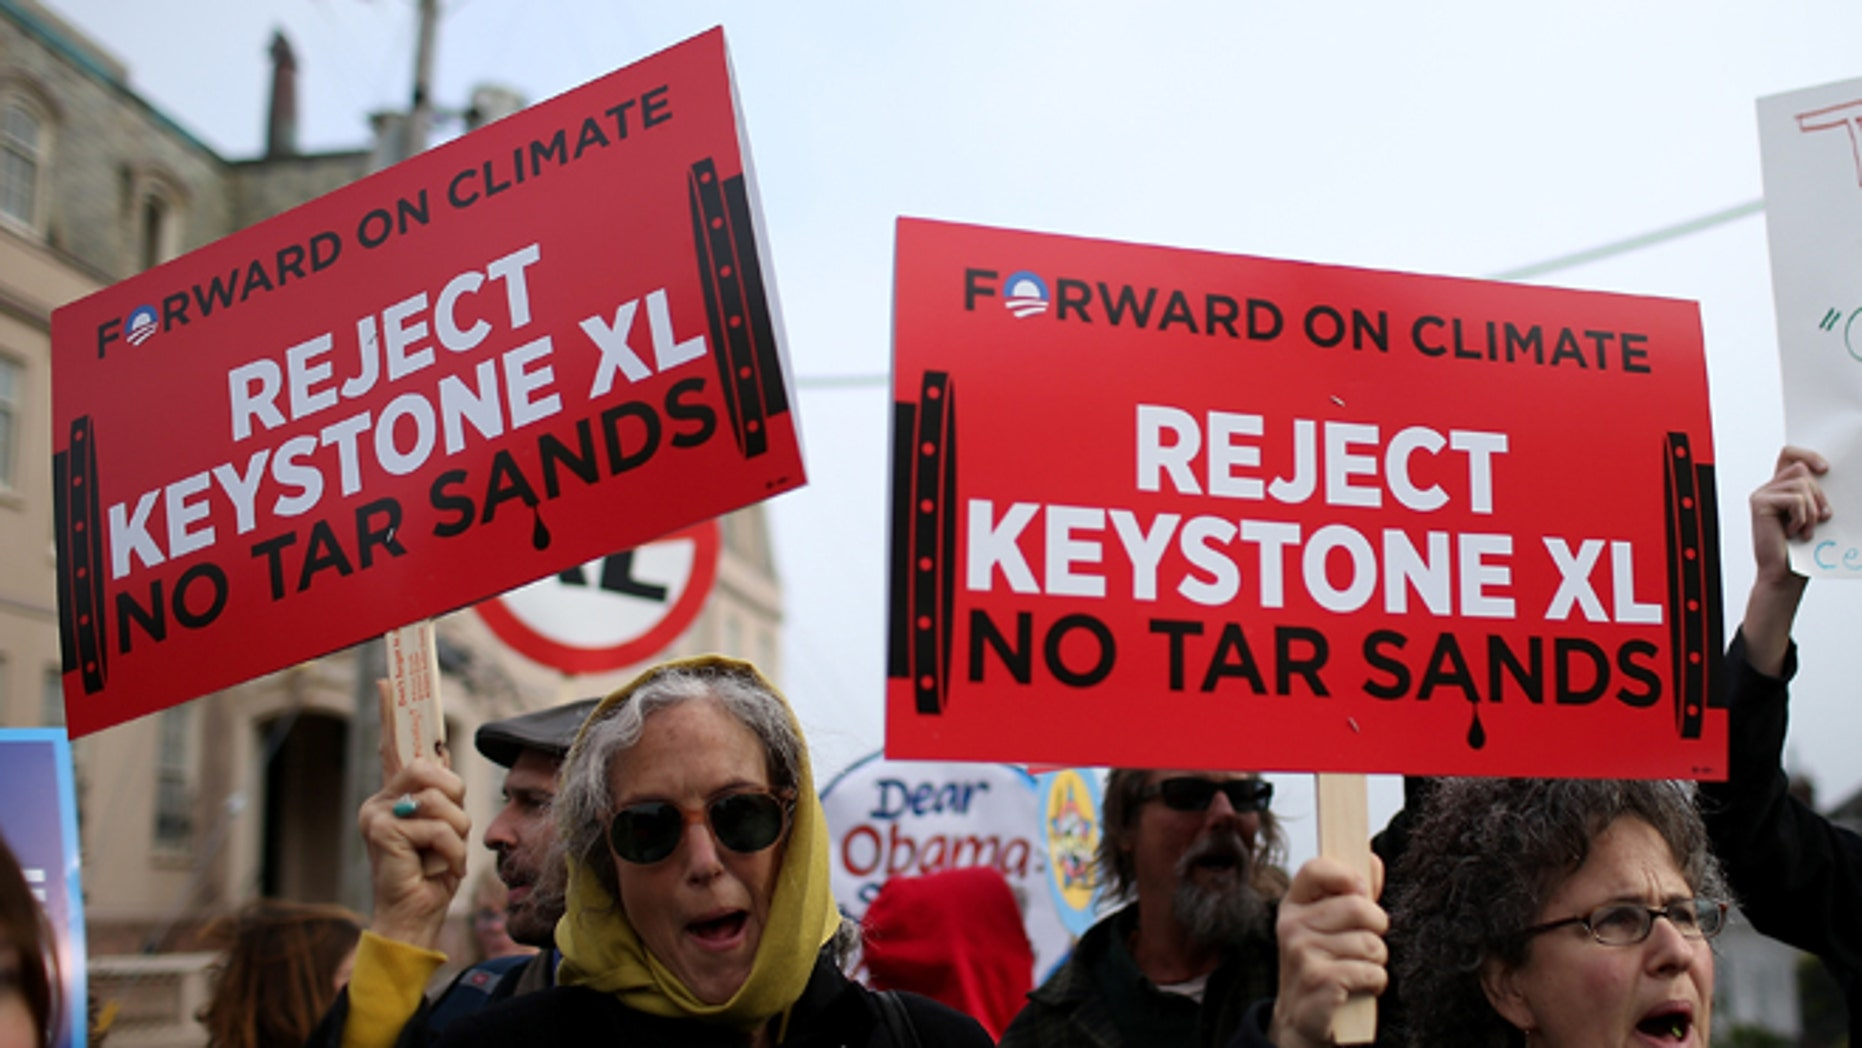 SAN FRANCISCO, CA - APRIL 03:  Demonstrators hold signs as they protest near the site of a fundraiser on April 3, 2013 in San Francisco, California.  Hundreds of protesters staged a demonstration against war and the Keystone XL pipeline outside of a fundraiser to be attended by U.S. President Barack Obama at the home of Ann and Gordon Getty. (Photo by Justin Sullivan/Getty Images)